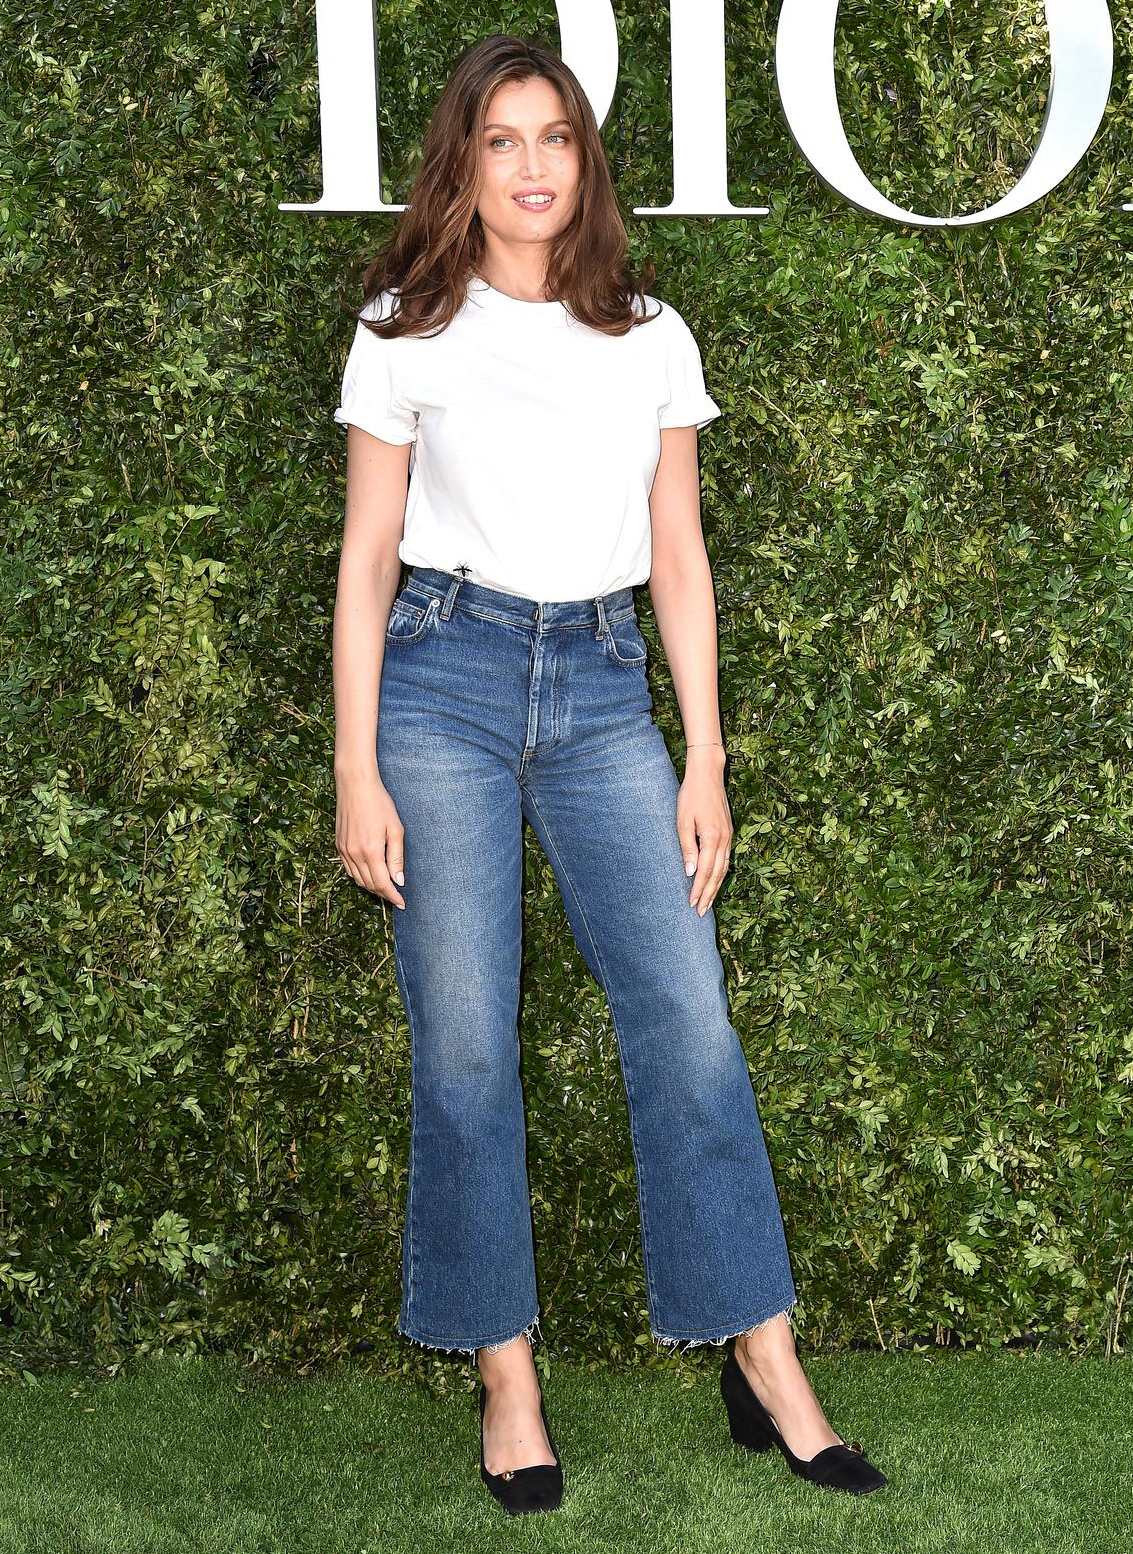 French Girl Style Inspiration — Laetitia Casta Model outfit idea with white t-shirt, flared jeans aand square toe heels